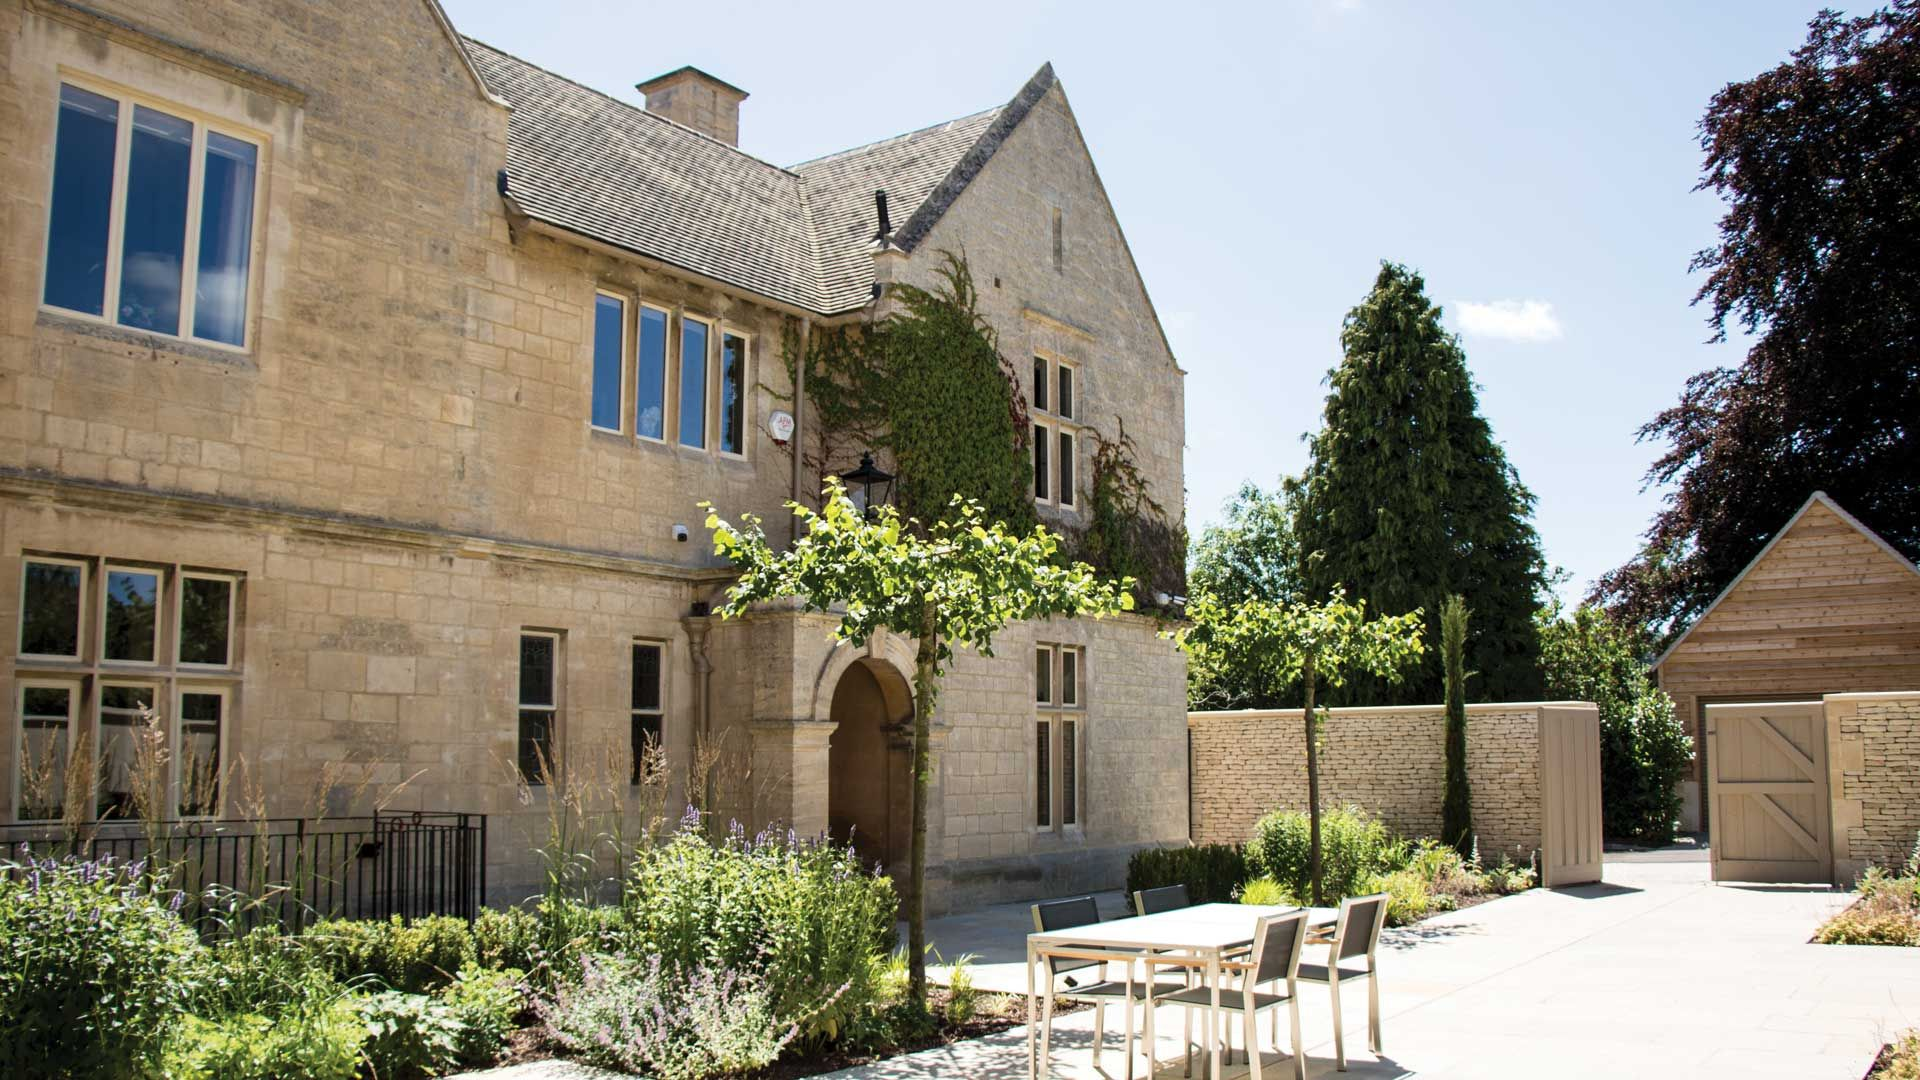 The Lodge - StayCotswold